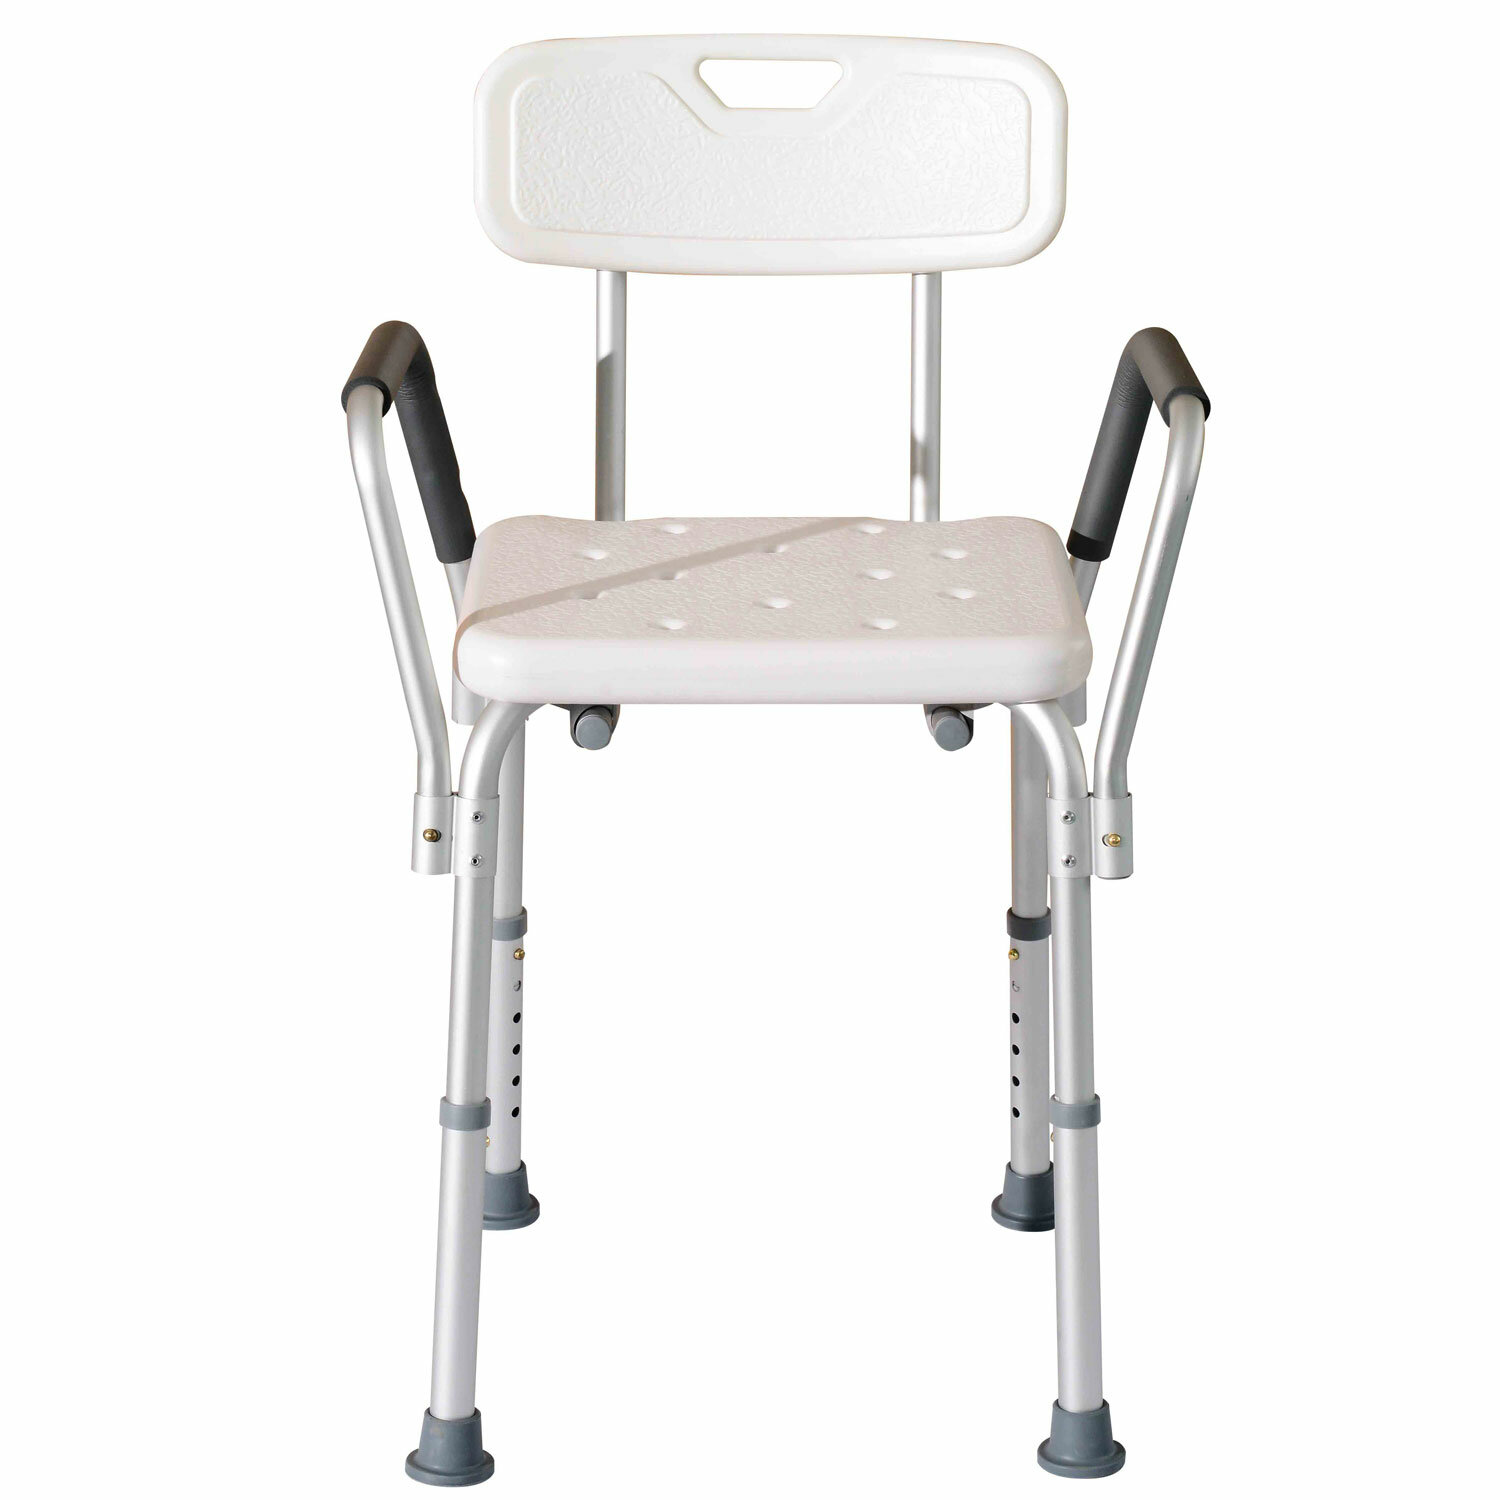 HomCom Adjustable Medical Shower Seat & Reviews | Wayfair